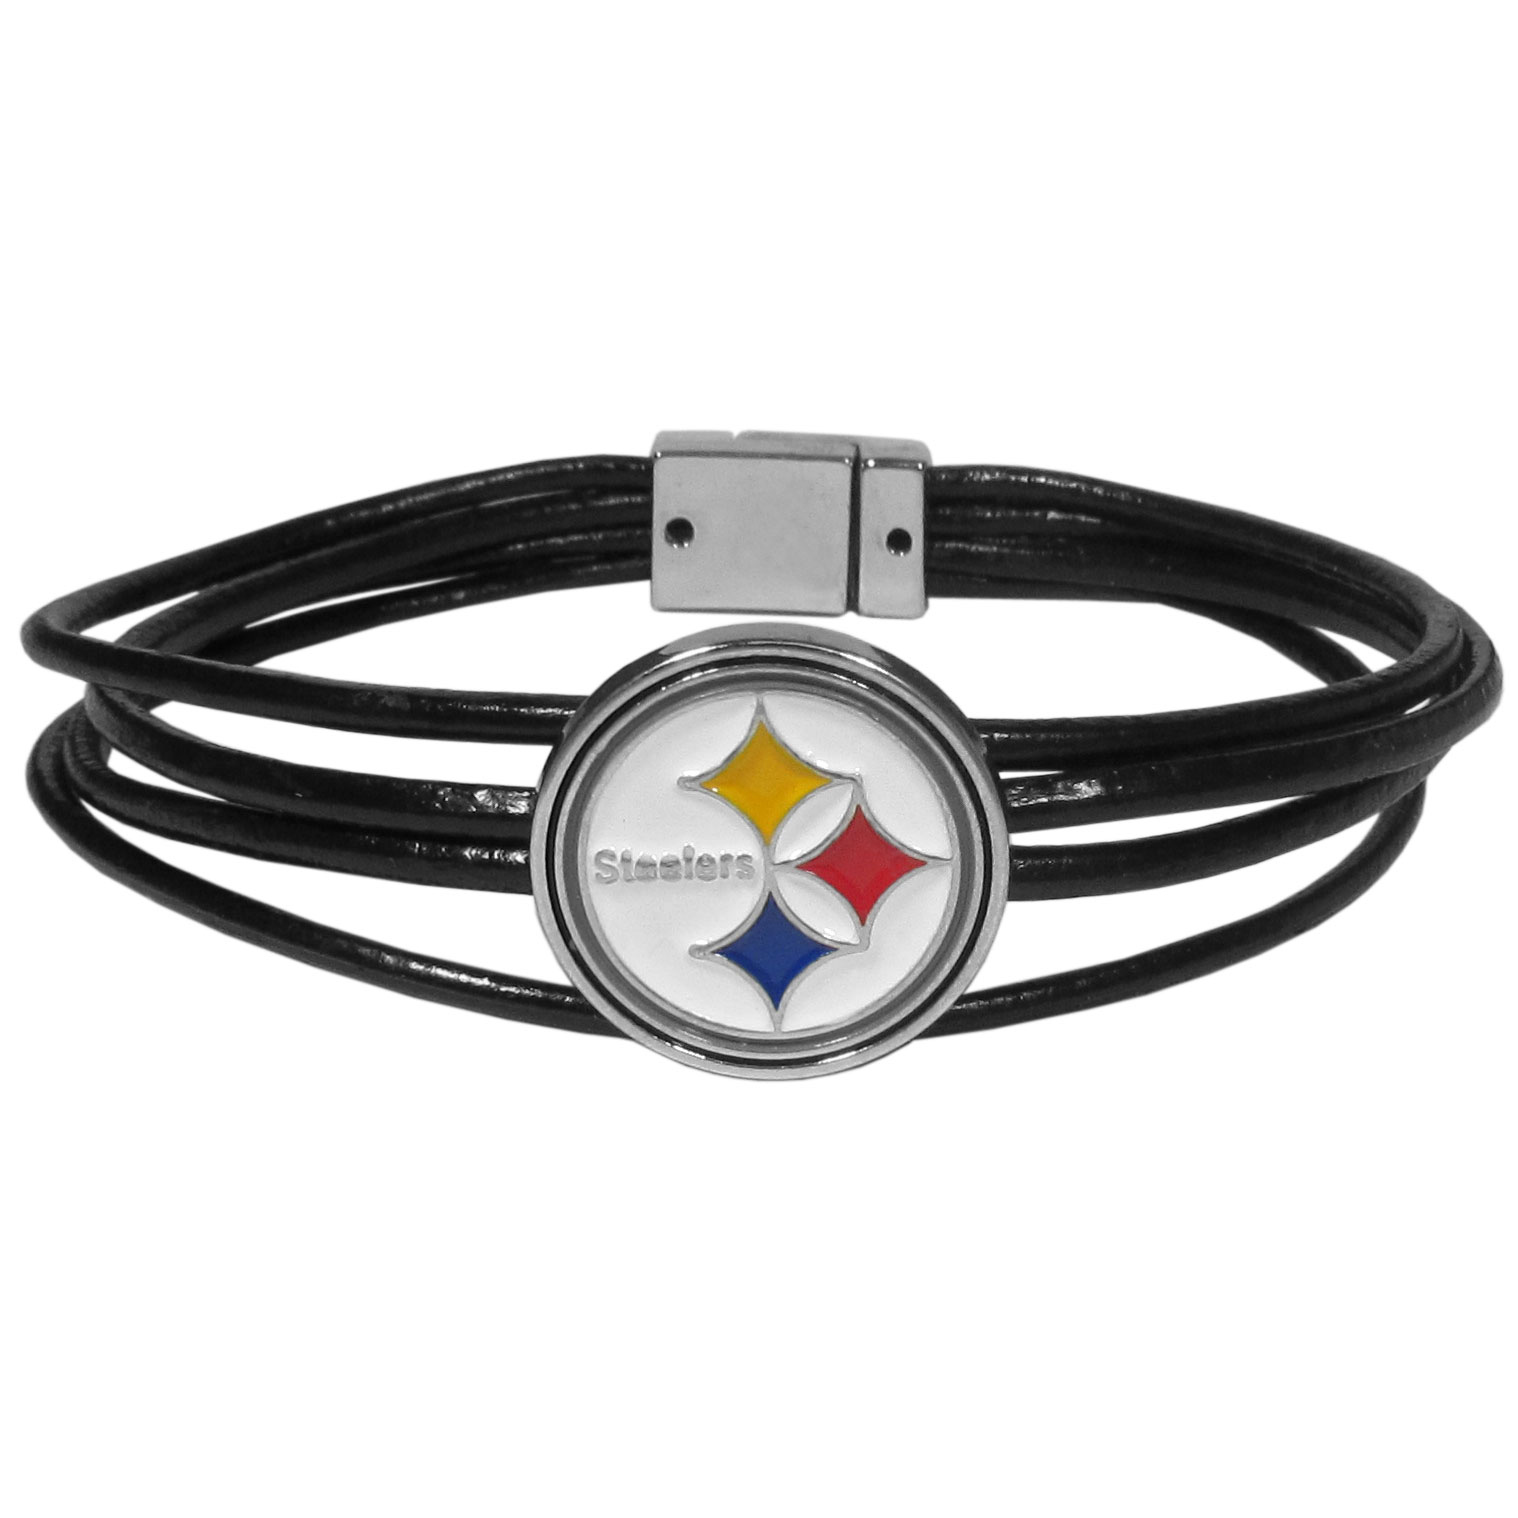 Pittsburgh Steelers Magnetic Cord Bracelet - Our magnetic clasp, multi-cord bracelet is 8 inches long and features 4 black cords connected to a unique magnet clasp that has 4 prongs that help lock the bracelet into place. The fun and fashionable bracelet features a fully cast Pittsburgh Steelers metal charm with expertly enameled team colors.